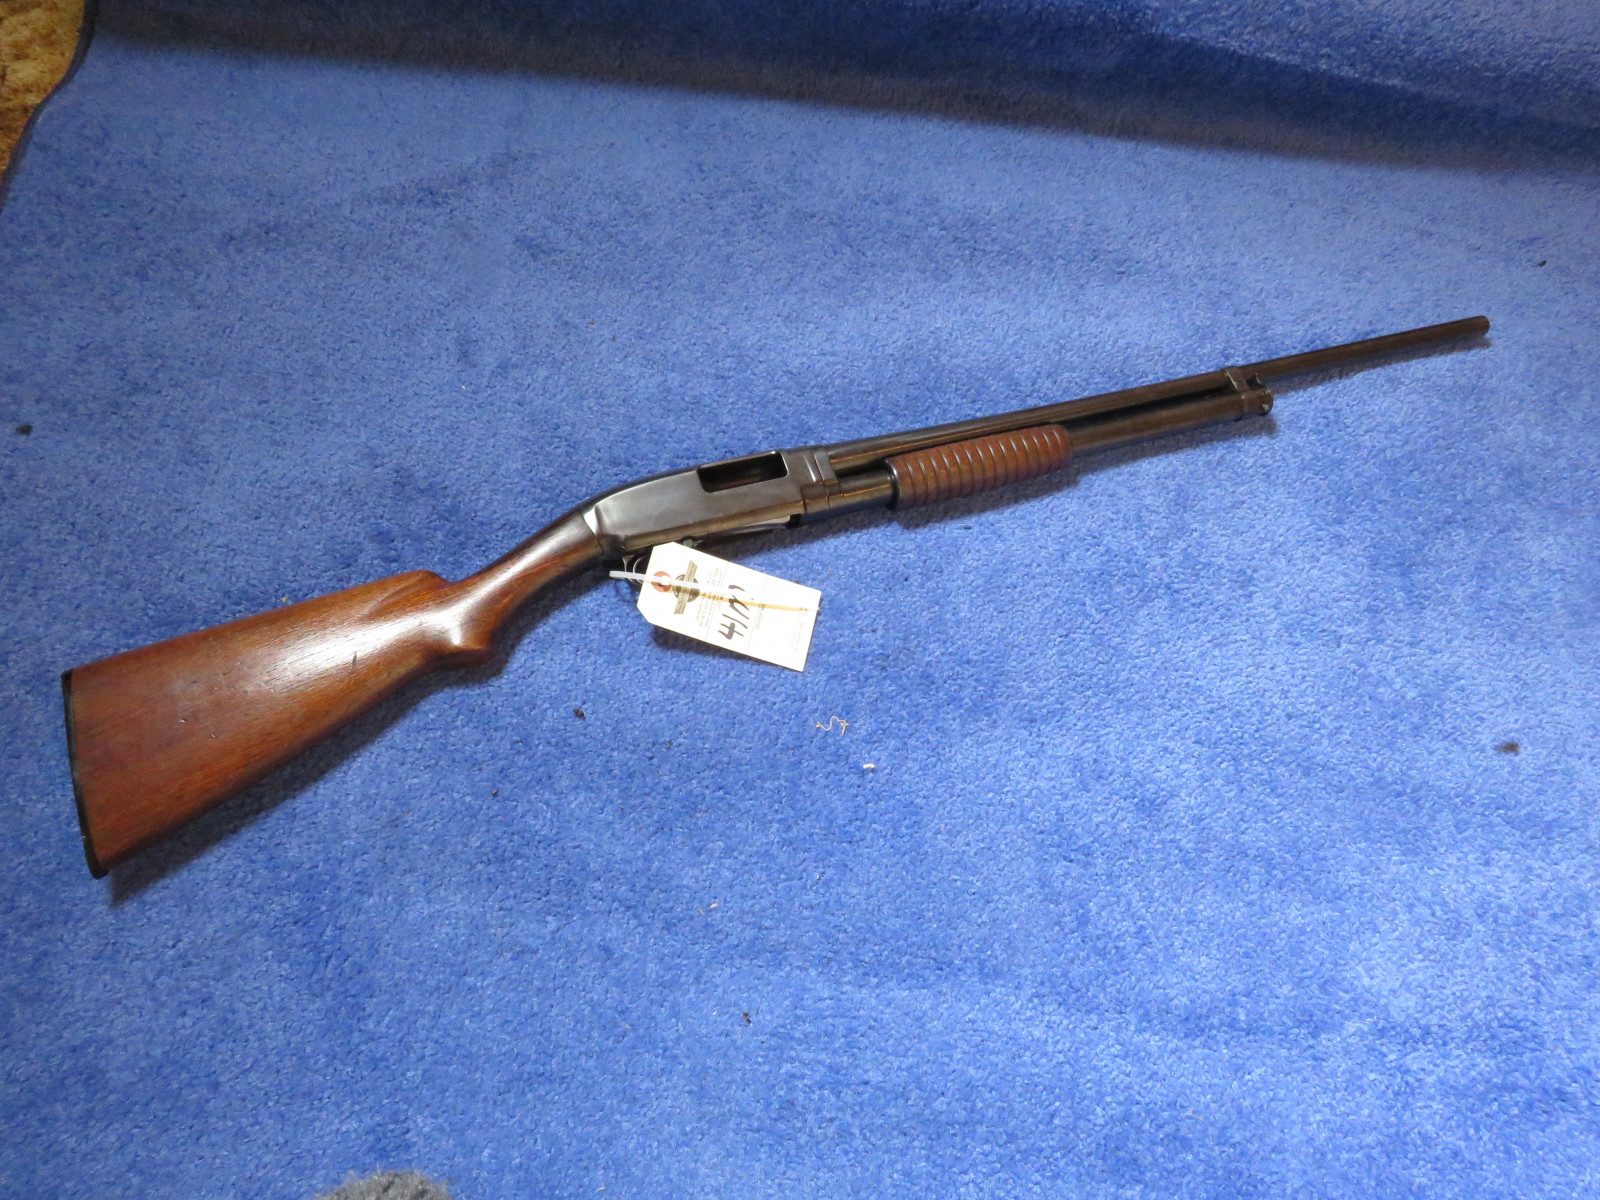 Winchester Model 1912 16 Gauge Shotgun - Image 1